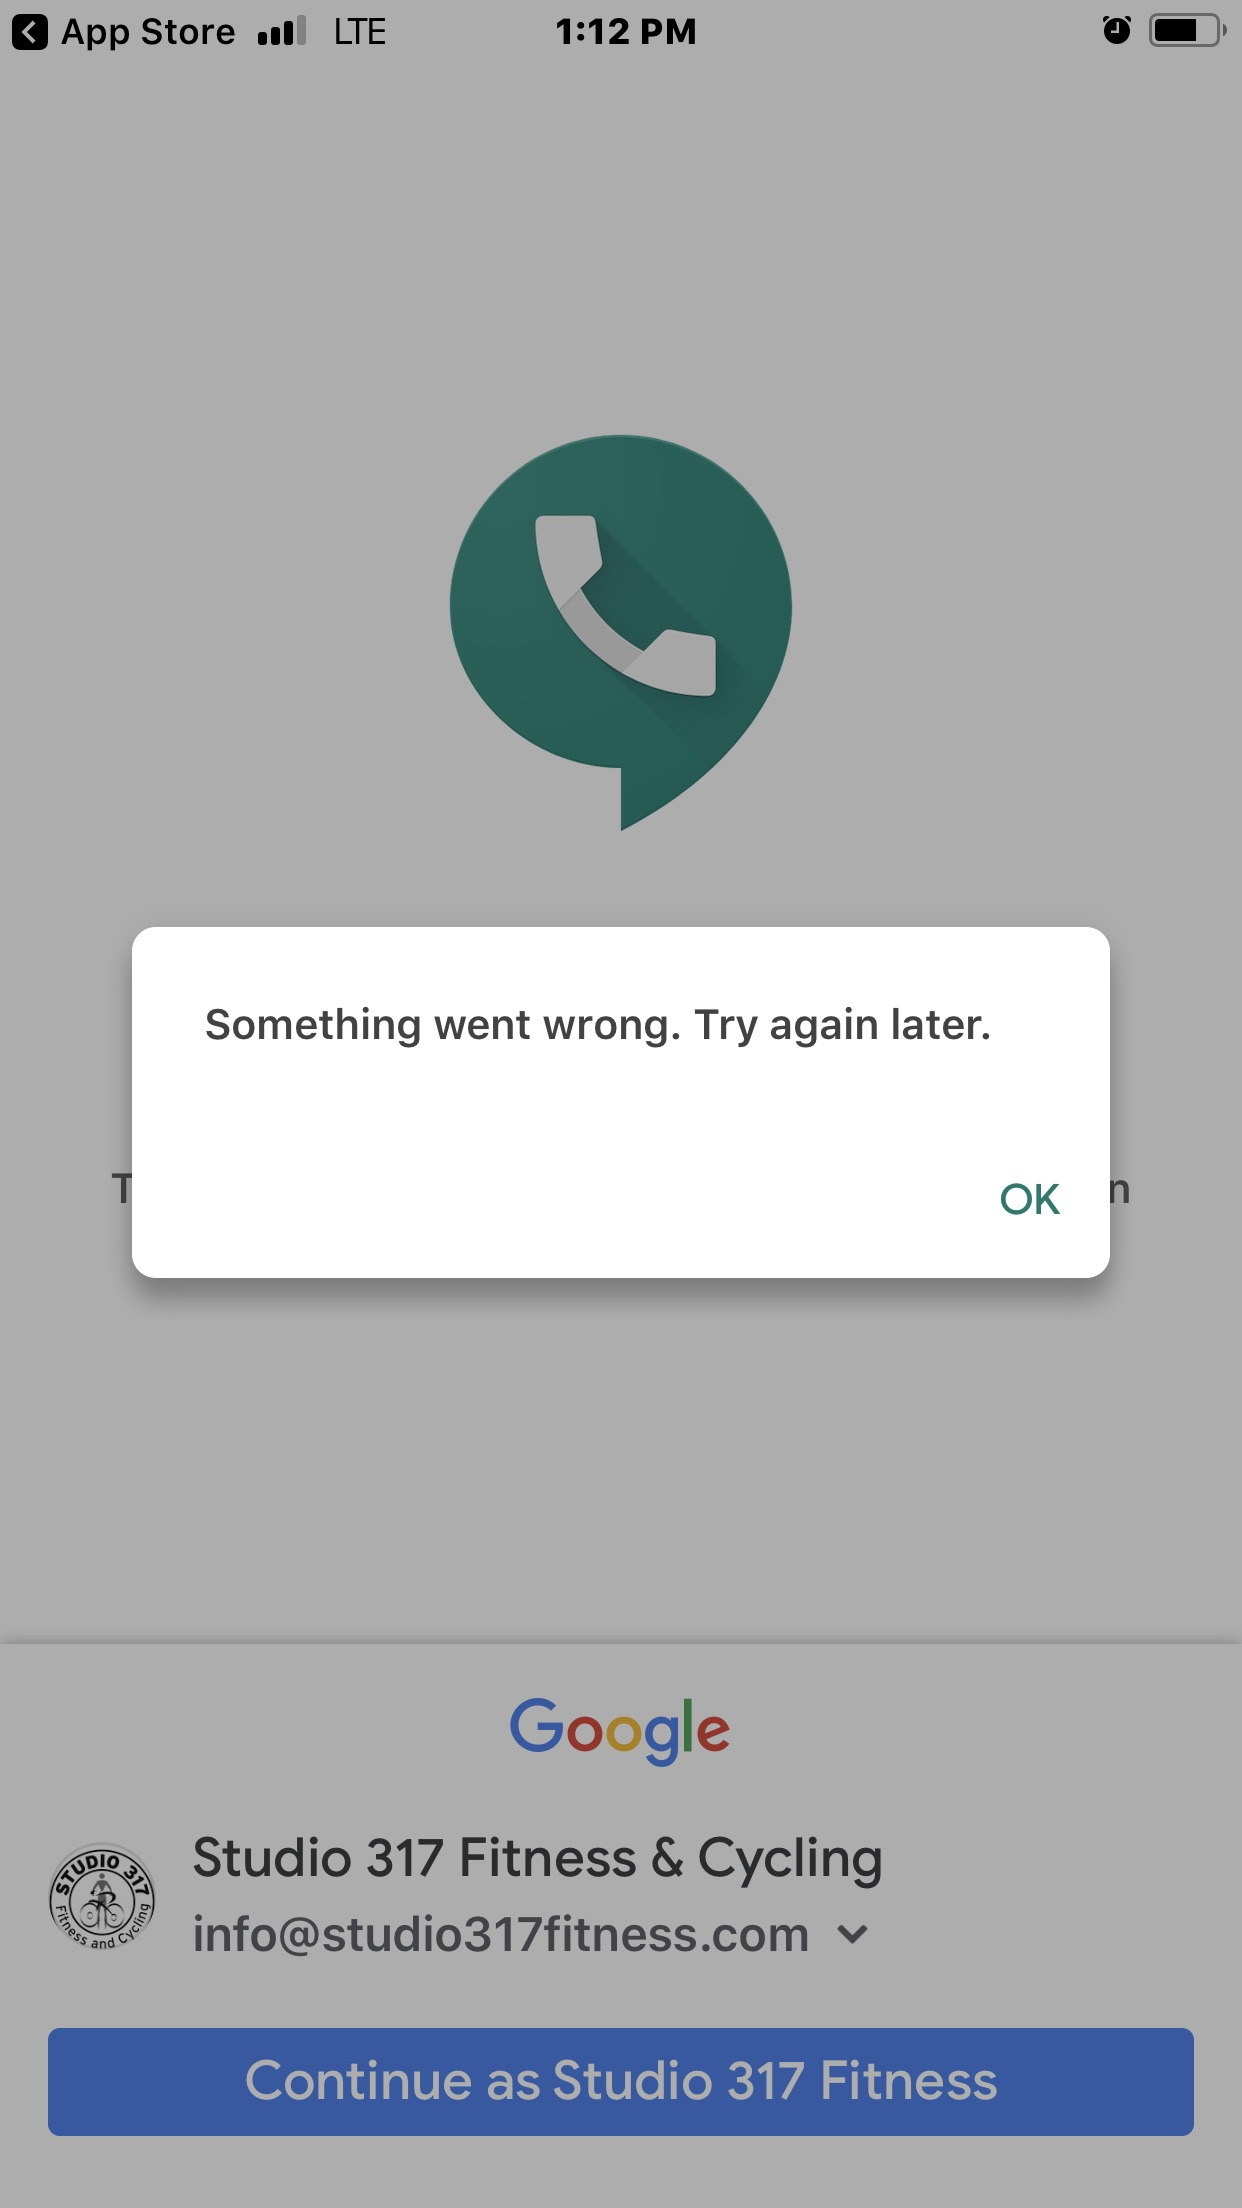 Not able to receive or send messages - Google Voice Help